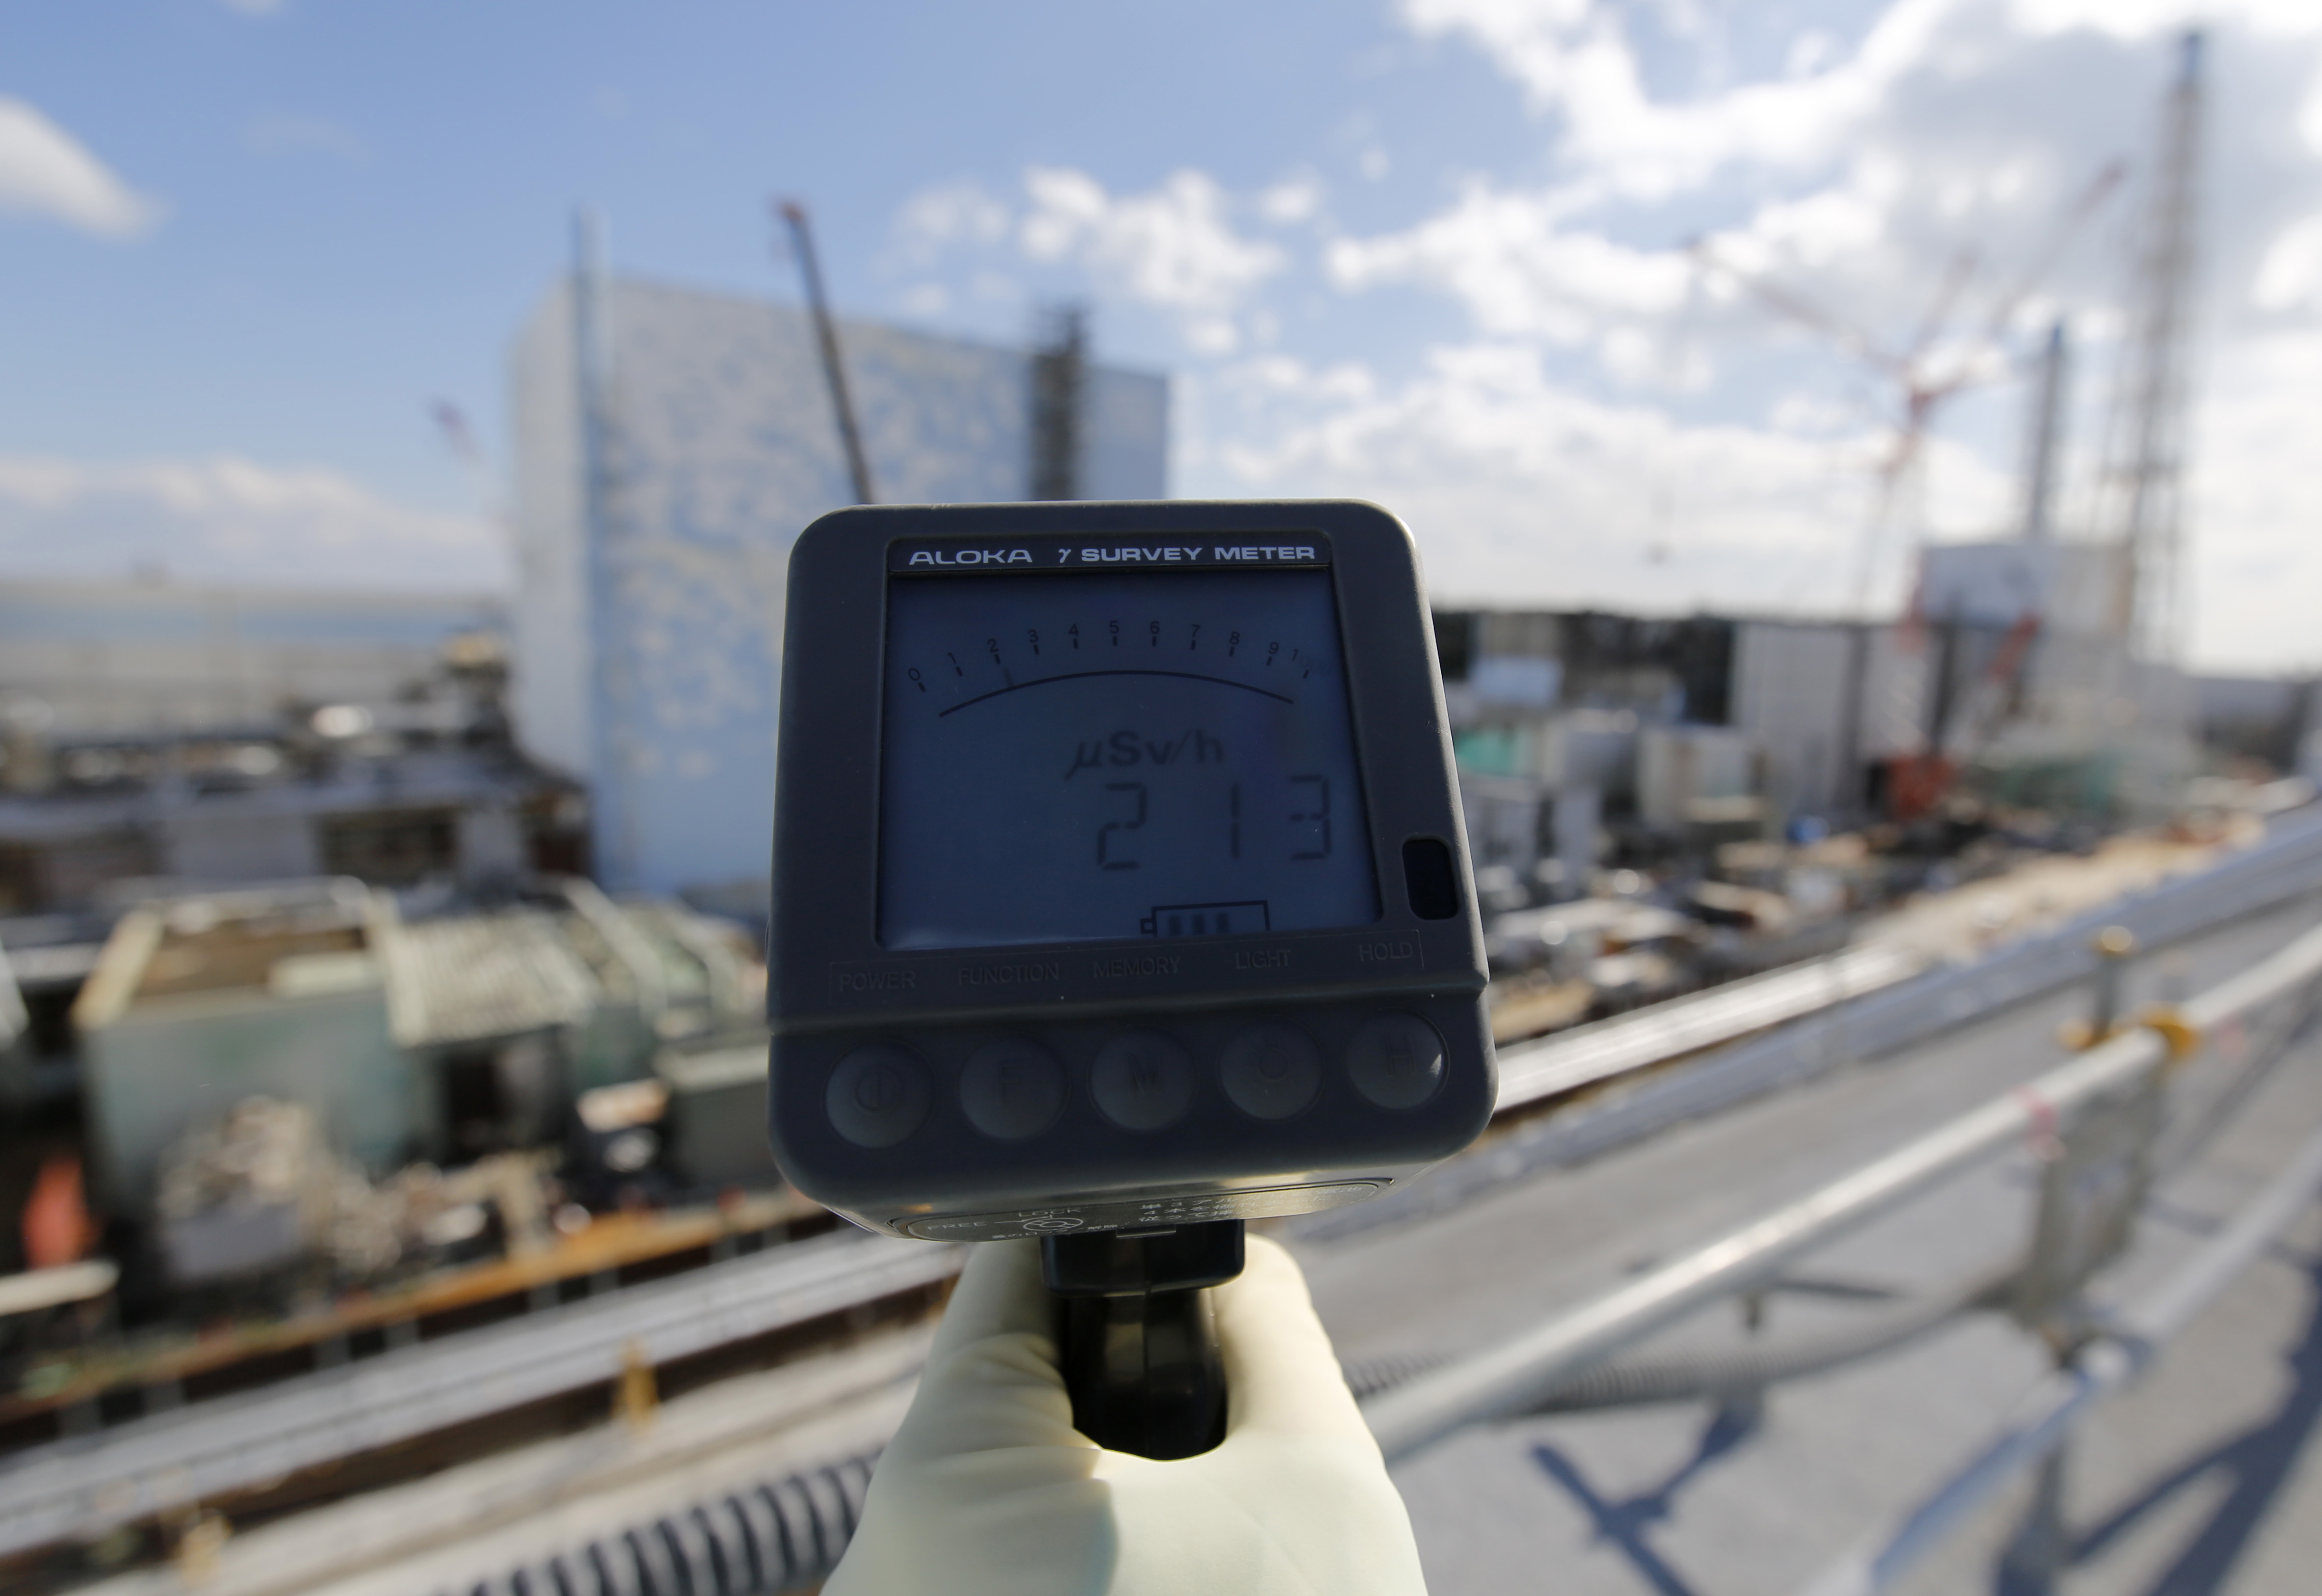 A Tokyo Electric Power Co. employee measures the radiation level at TEPCO's Fukushima Daiichi nuclear power plant in Okuma town on Feb. 10, 2016.